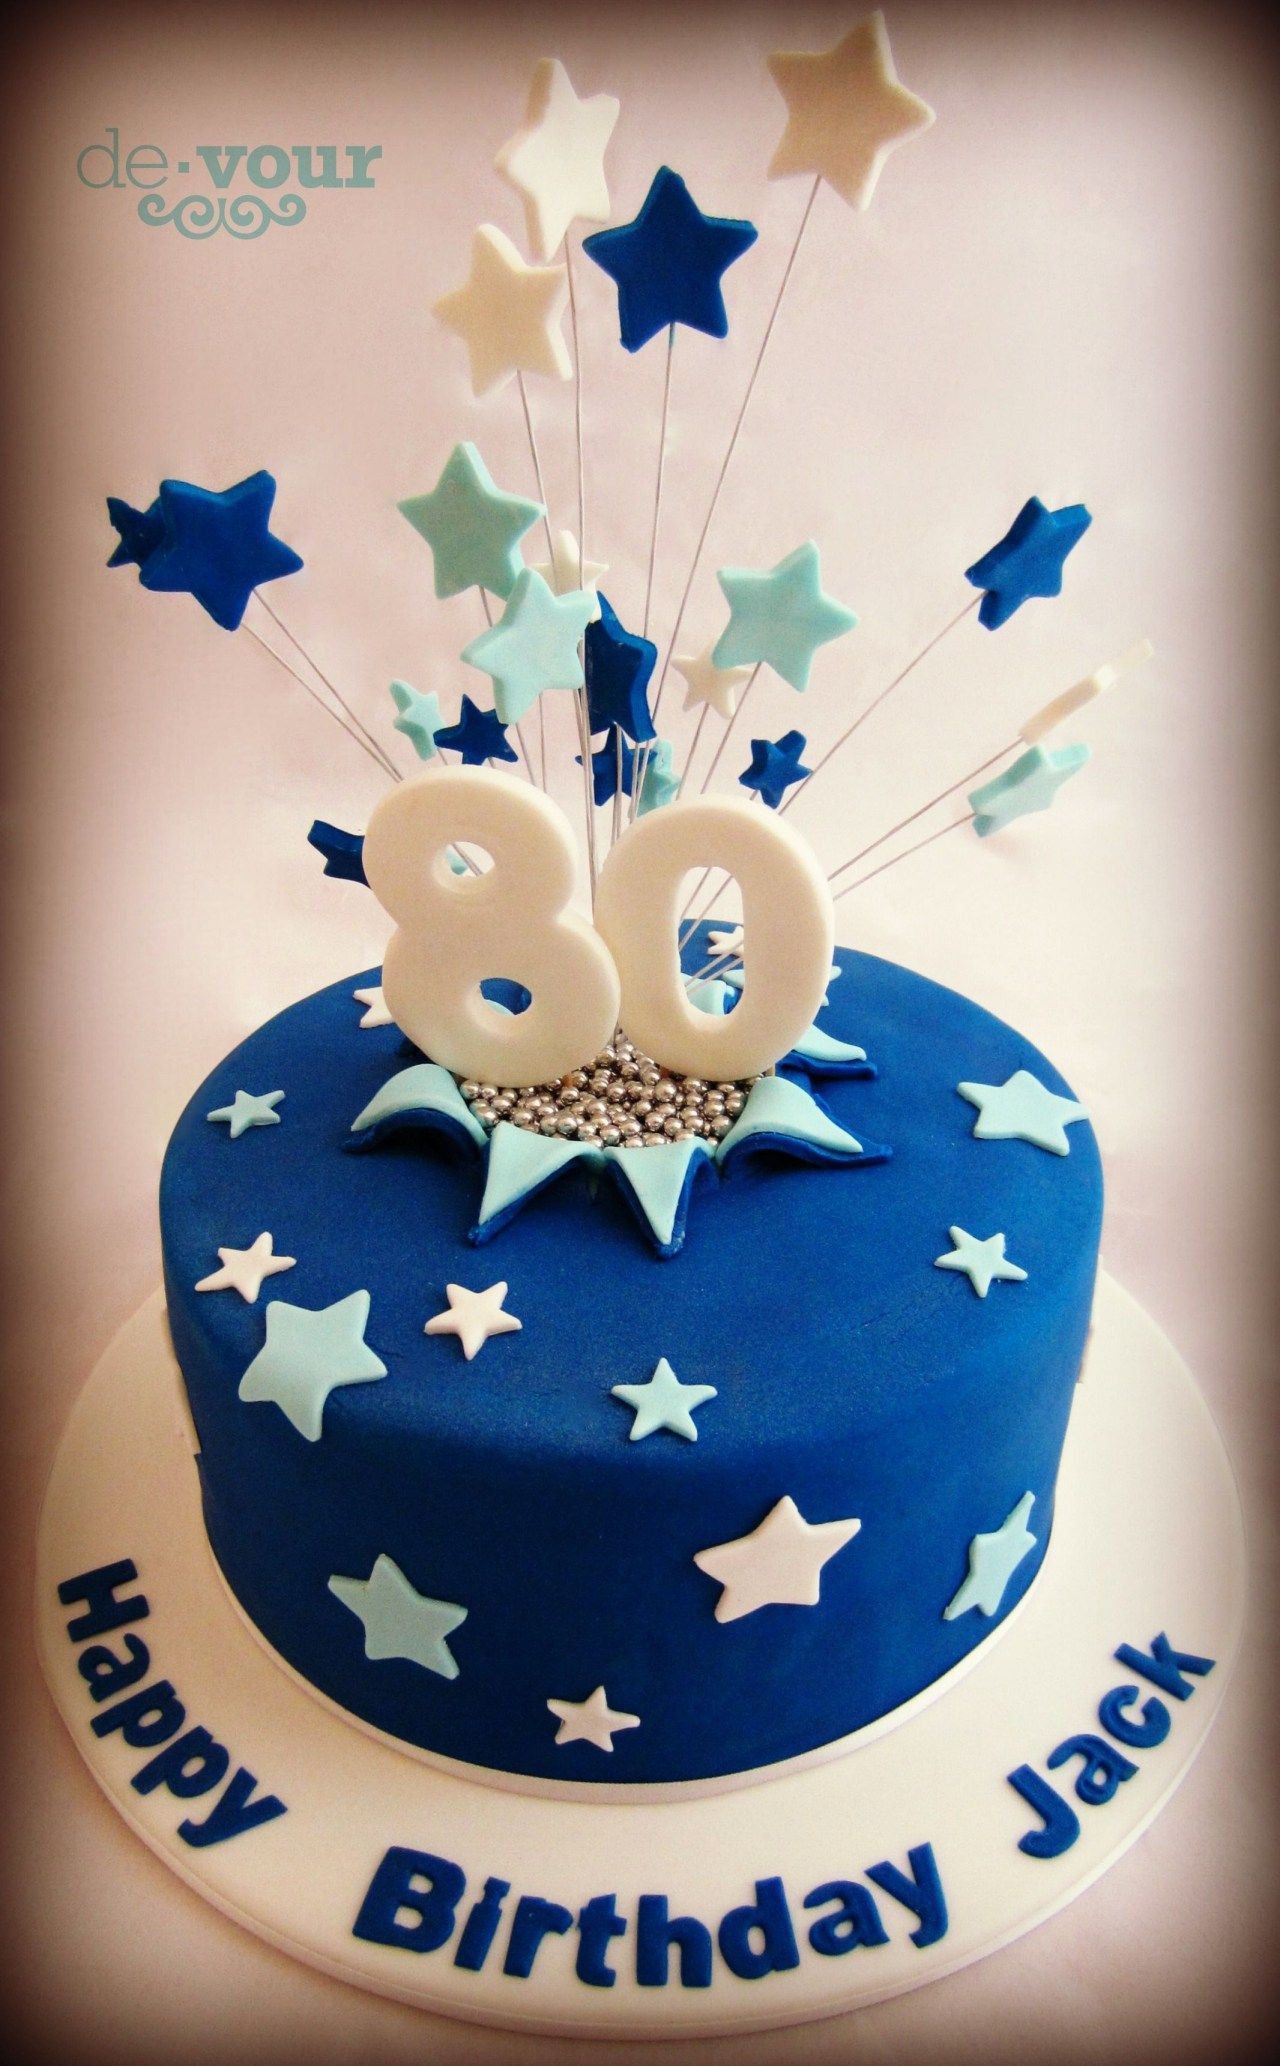 21 Best Image Of 80th Birthday Cakes For Dad 80 Birthday Cake